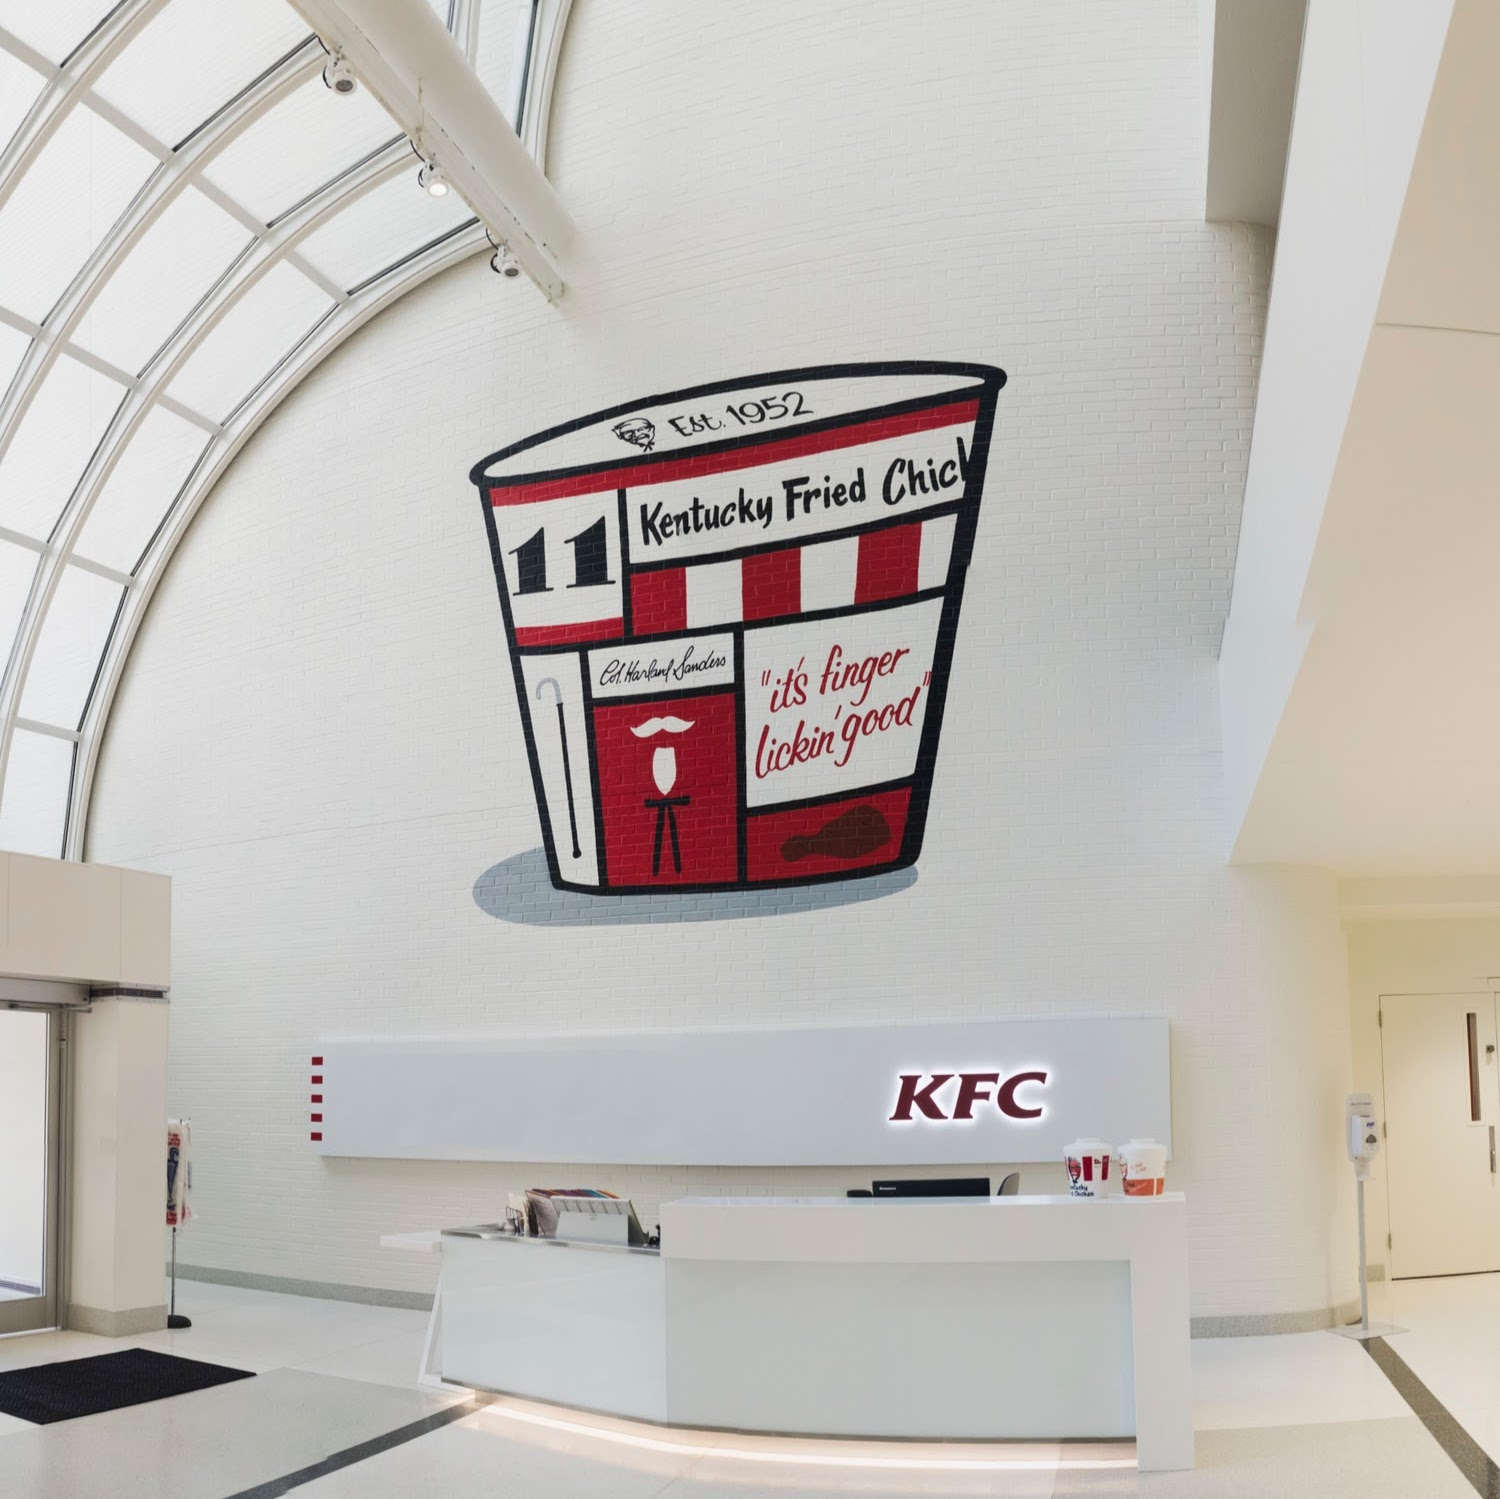 Kentucky Fried Chicken Mural - Bryan Todd